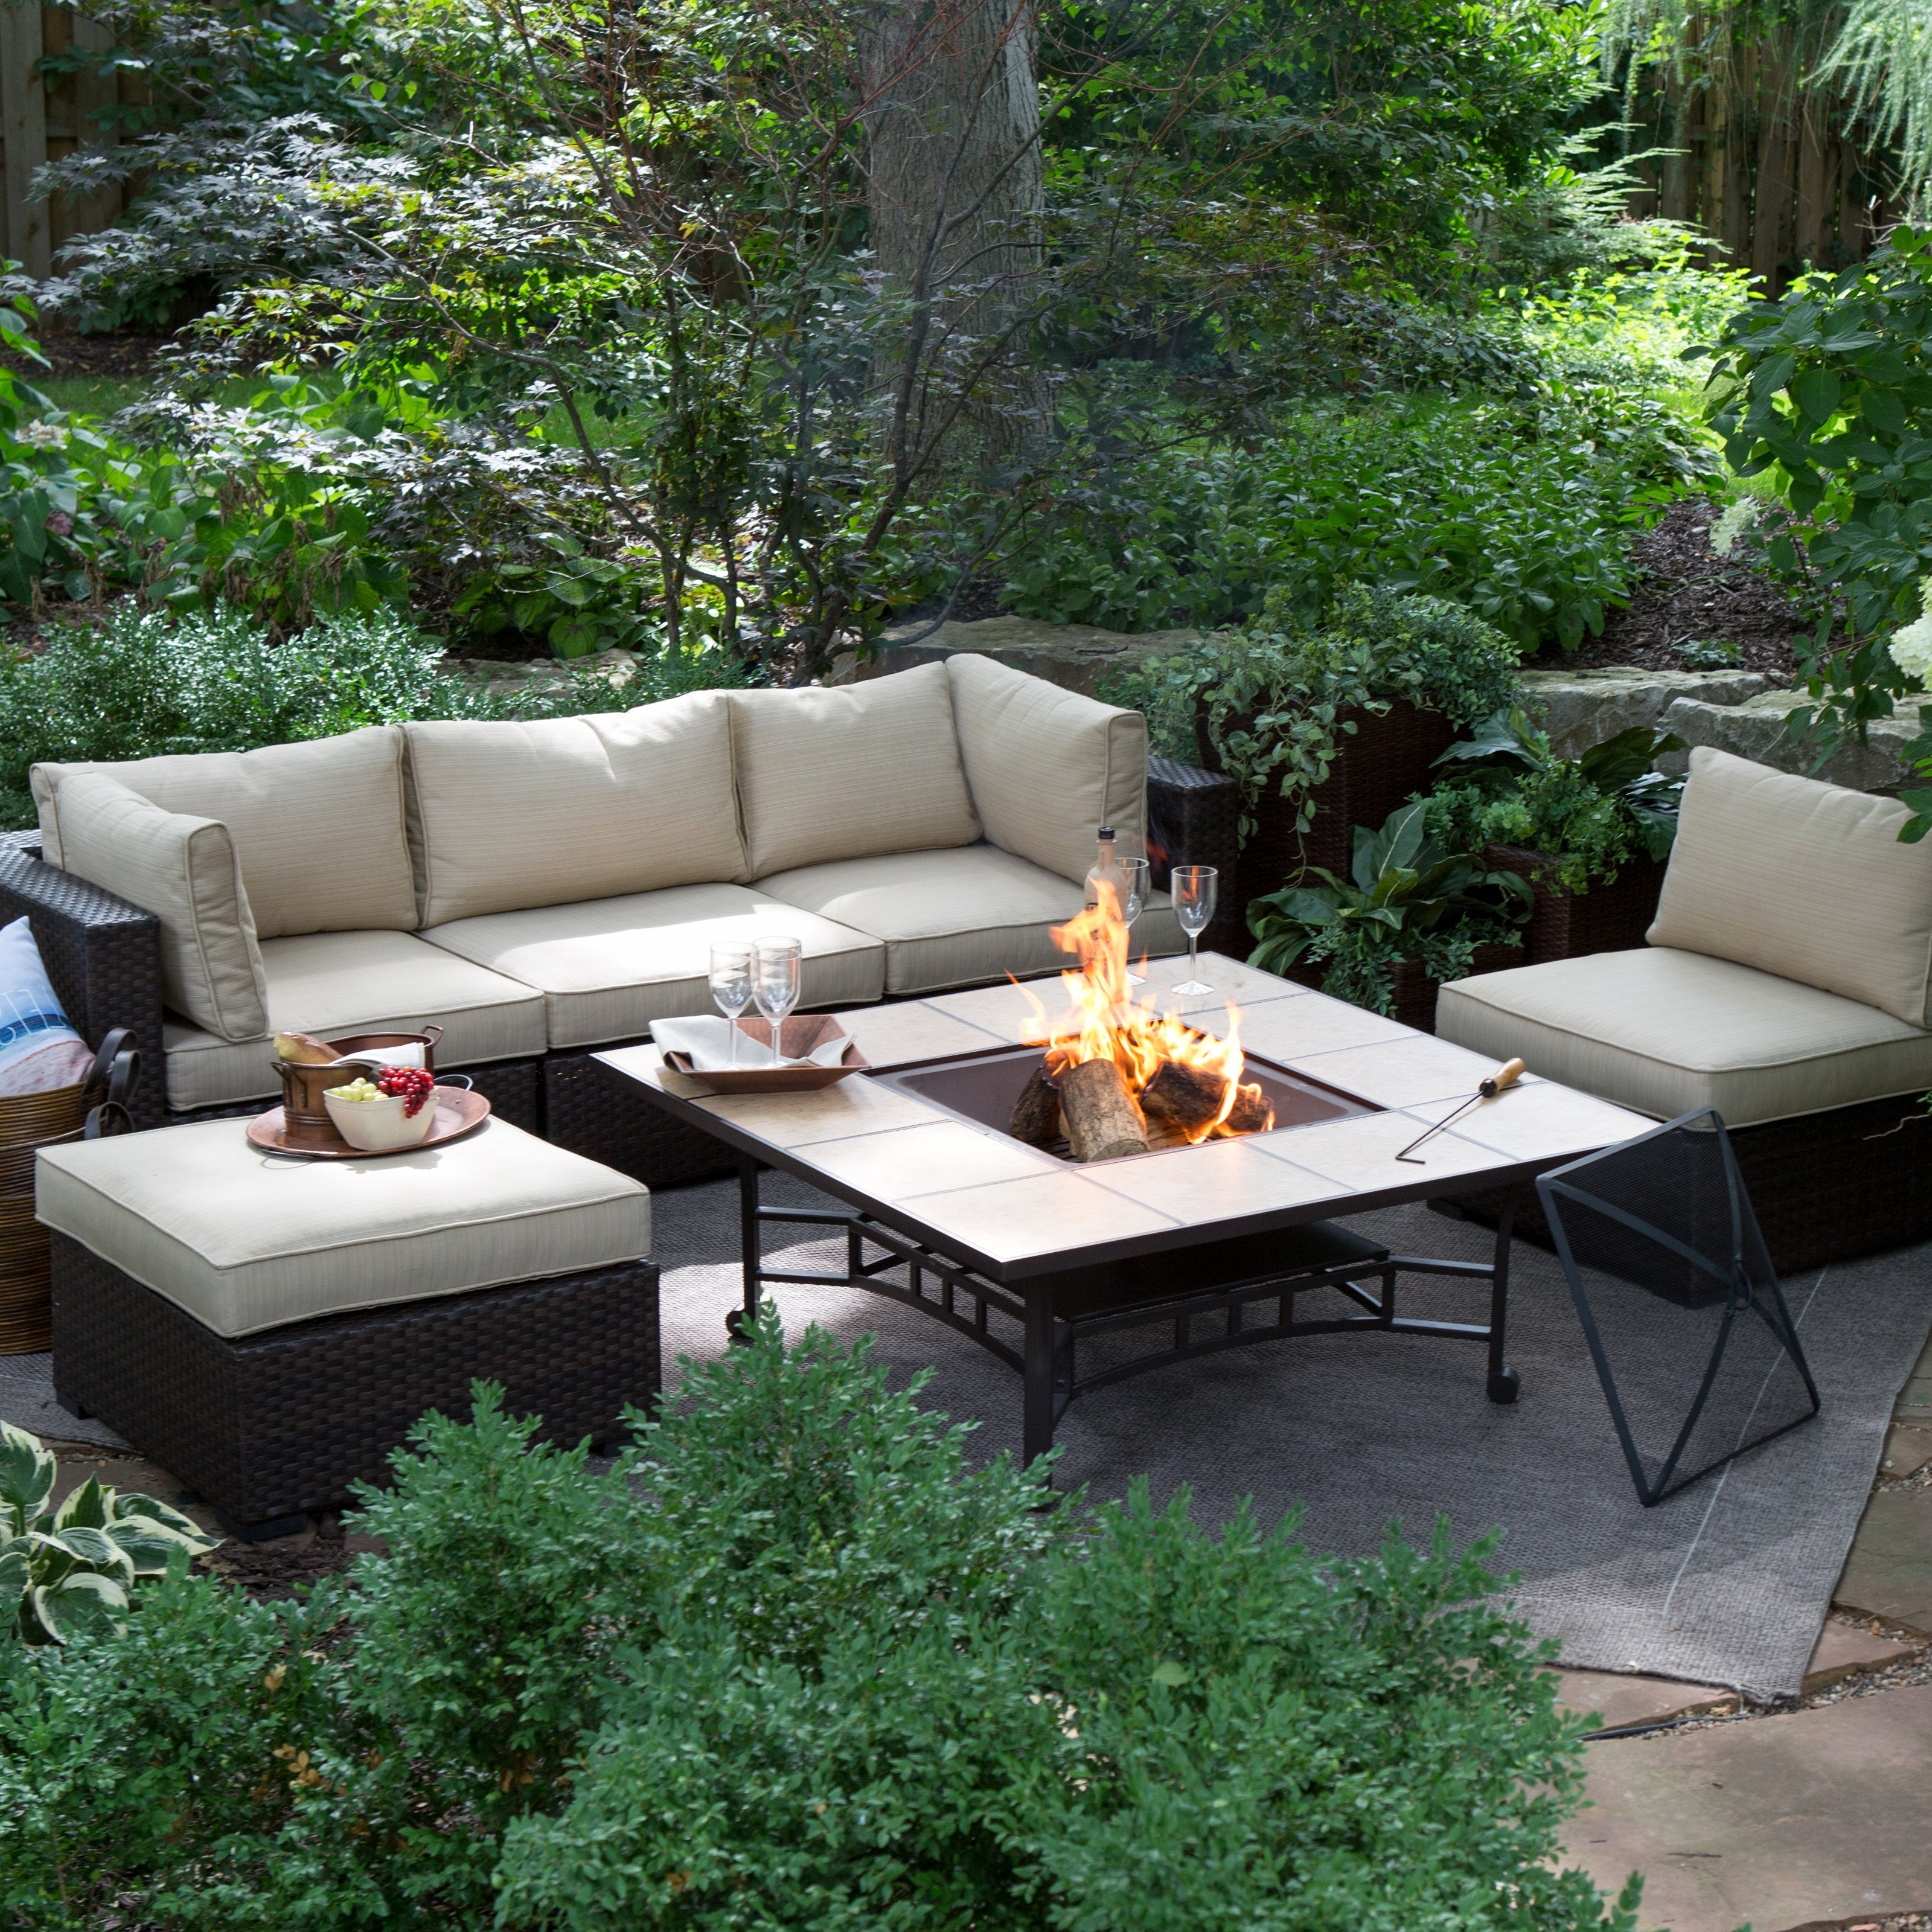 Famous Patio Conversation Sets With Fire Table Within Patio Conversation Sets With Fire Pit Lovely Conversation Sets Fire (View 14 of 15)